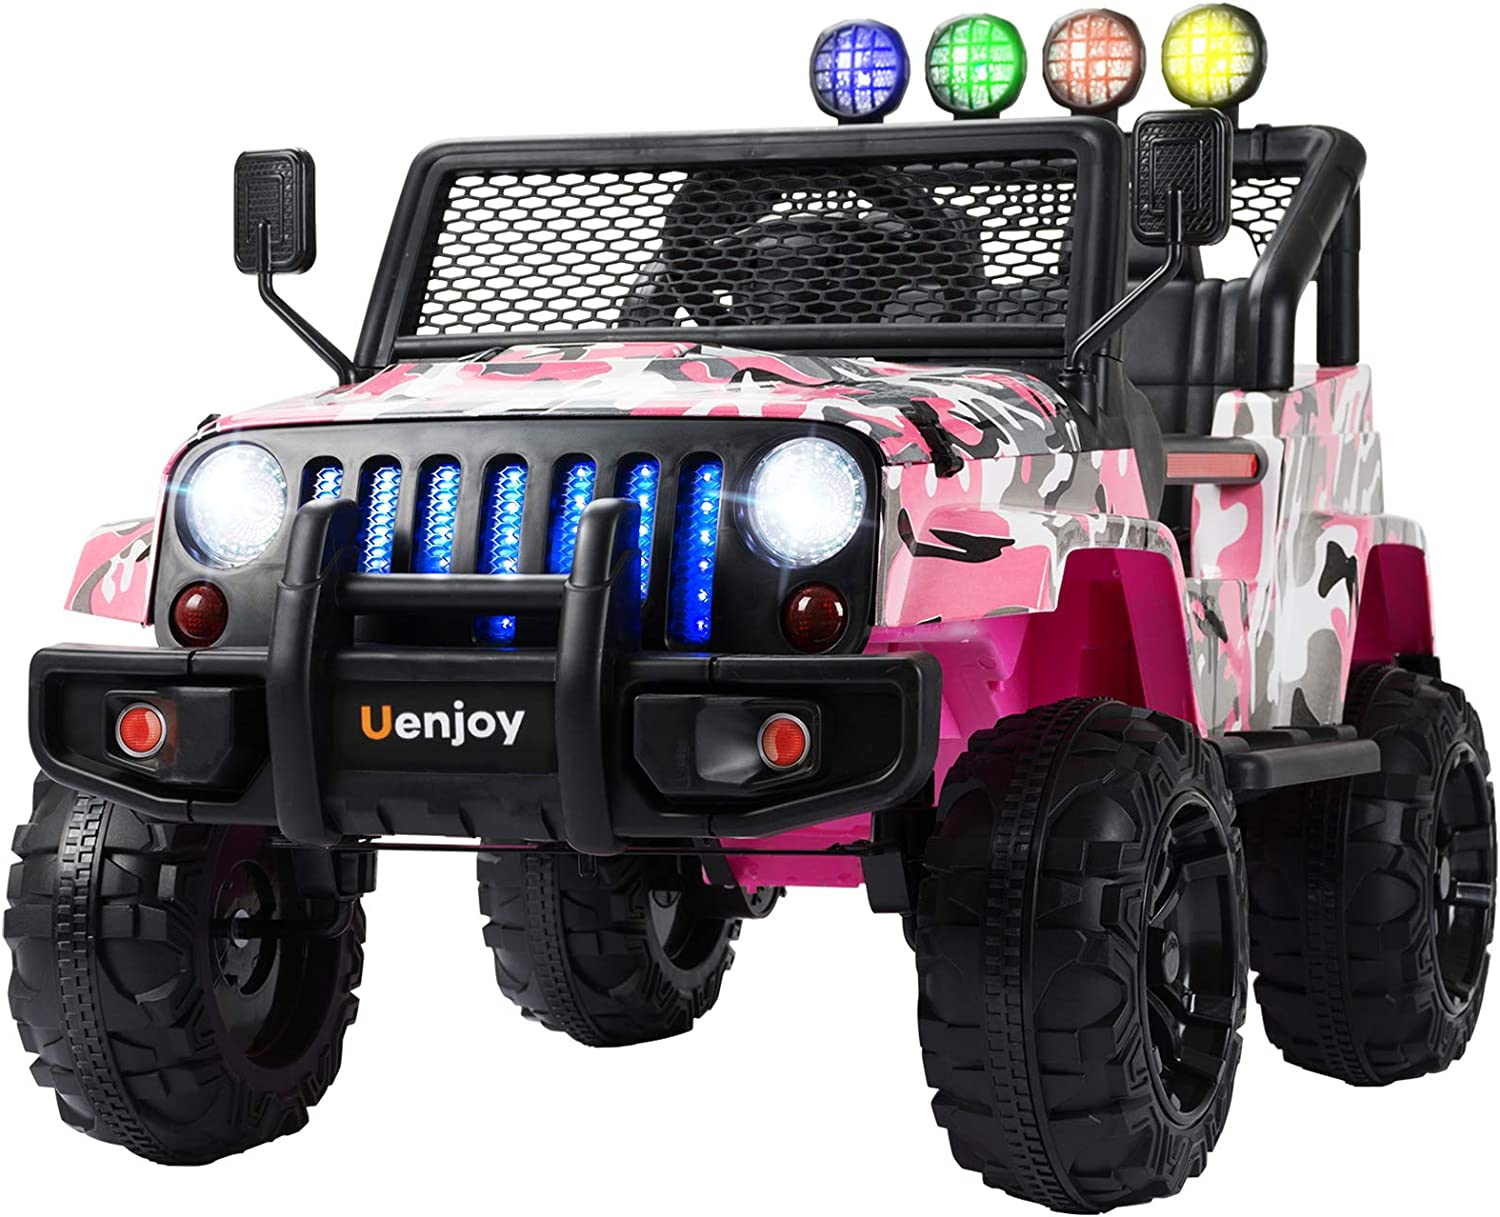 Uenjoy Kids Ride on Cars with Remote Control New Camouflage Color W/ Spring Suspension, Music